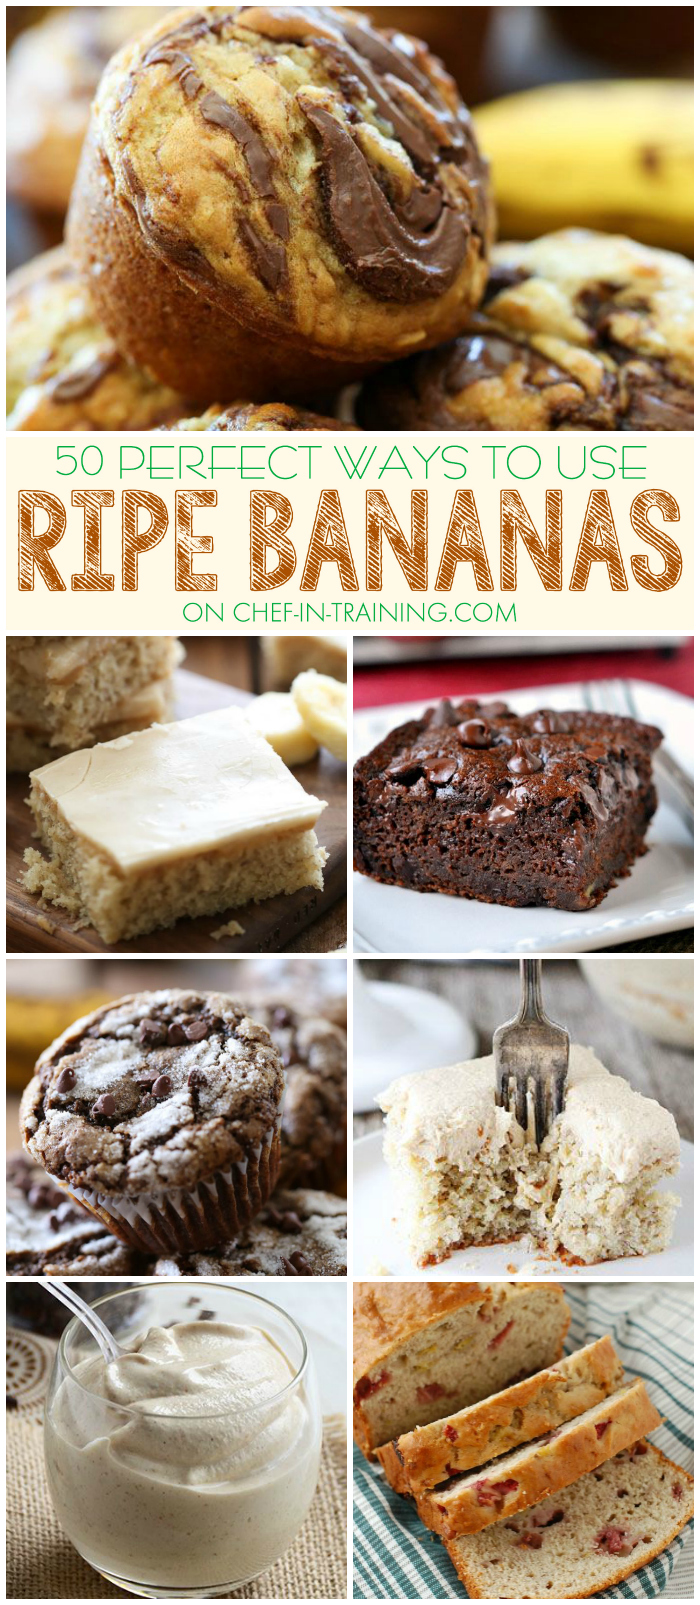 50 Different Ways to use up Ripe Bananas on chef-in-training.com ...Have some bananas you don't know what to do with?! Then you need to save and use this list! So many delicious ideas!